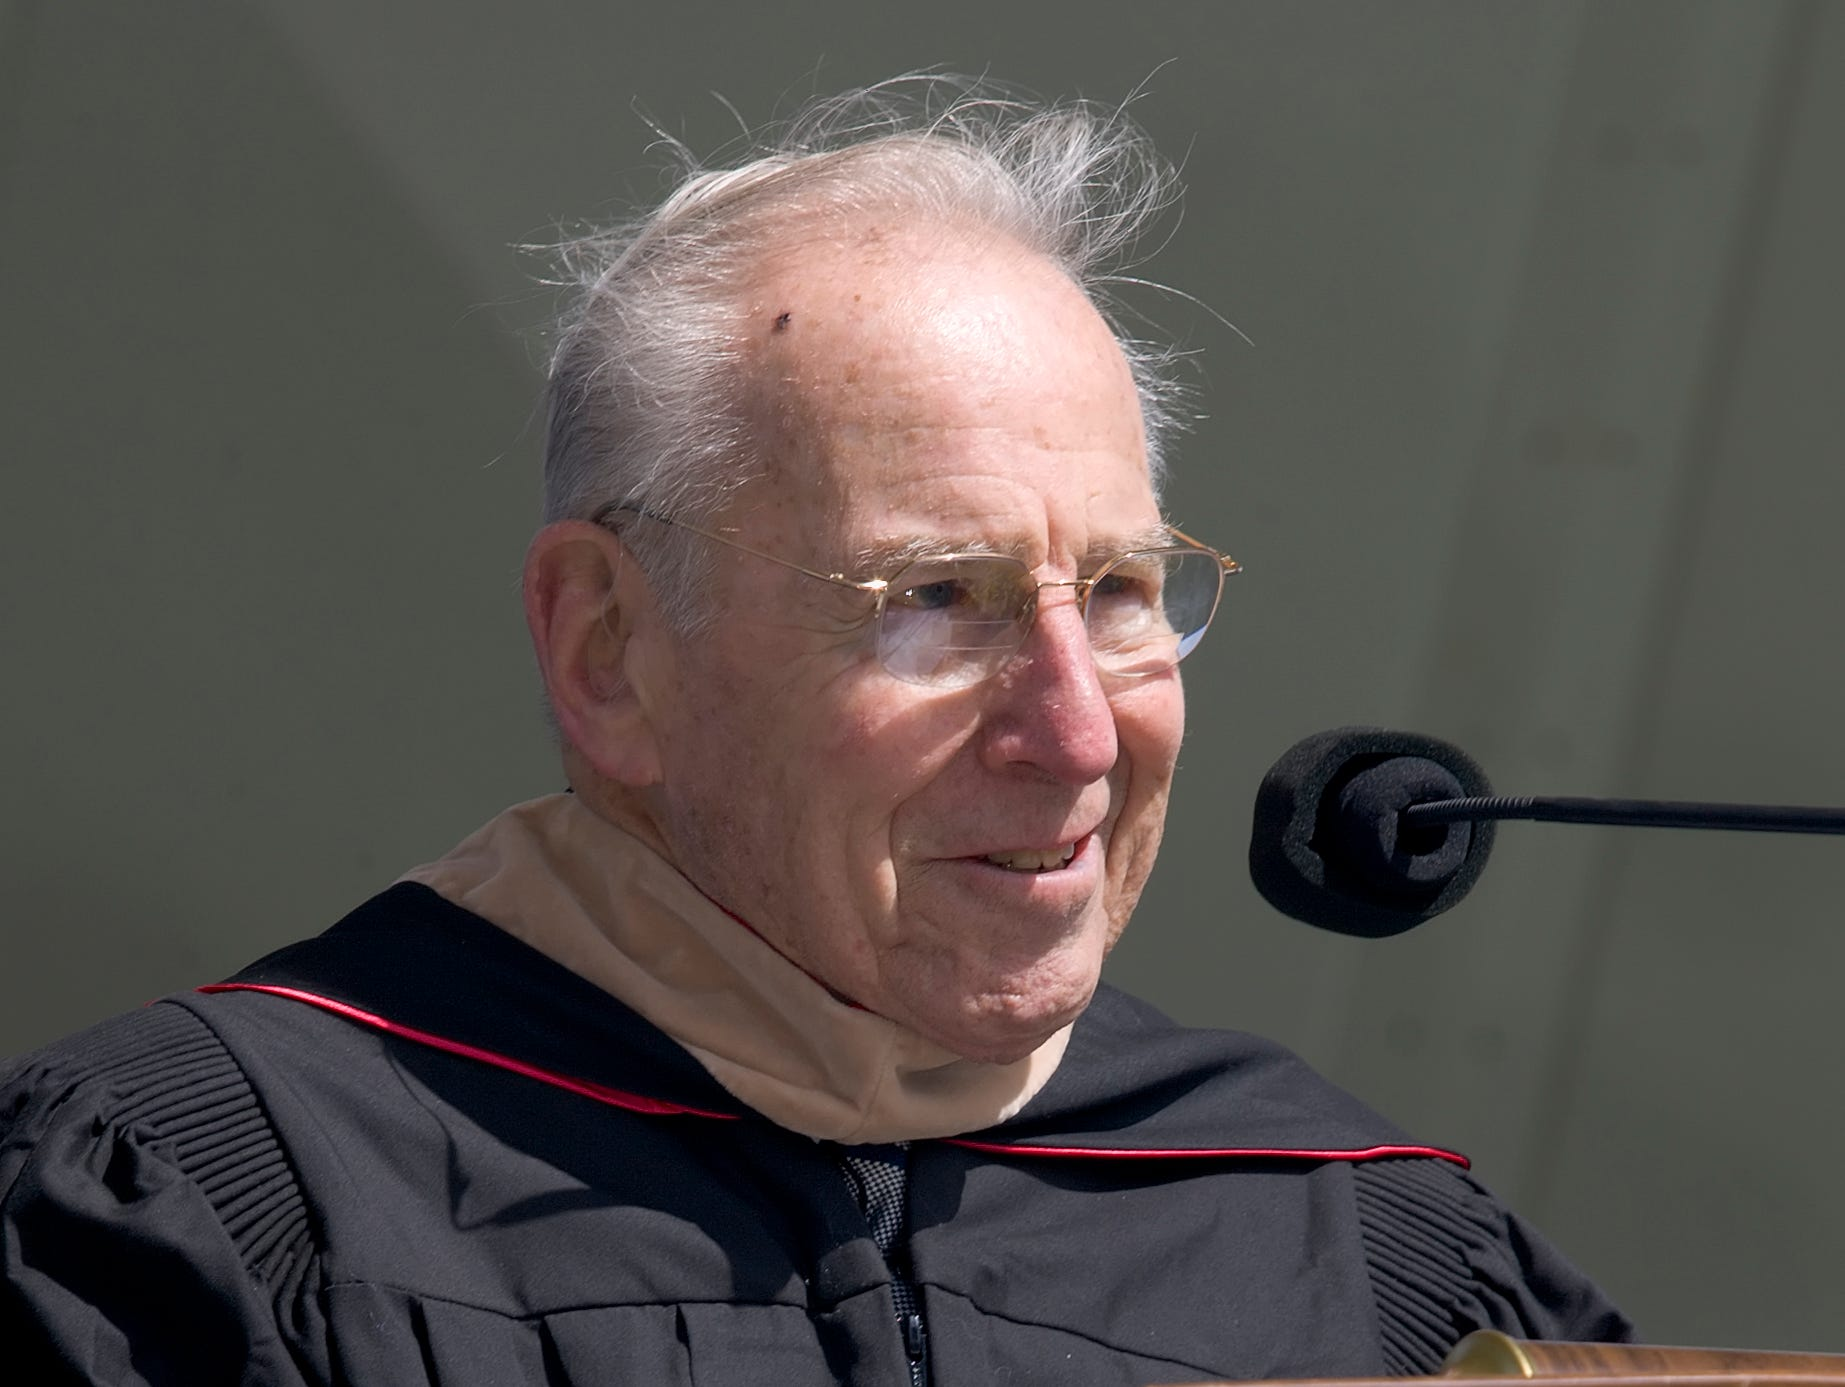 2009: Astronaut Jim Lovell speaks to the 2009 Ithaca College graduates about keeping an open mind Saturday at Butterfield Stadium.